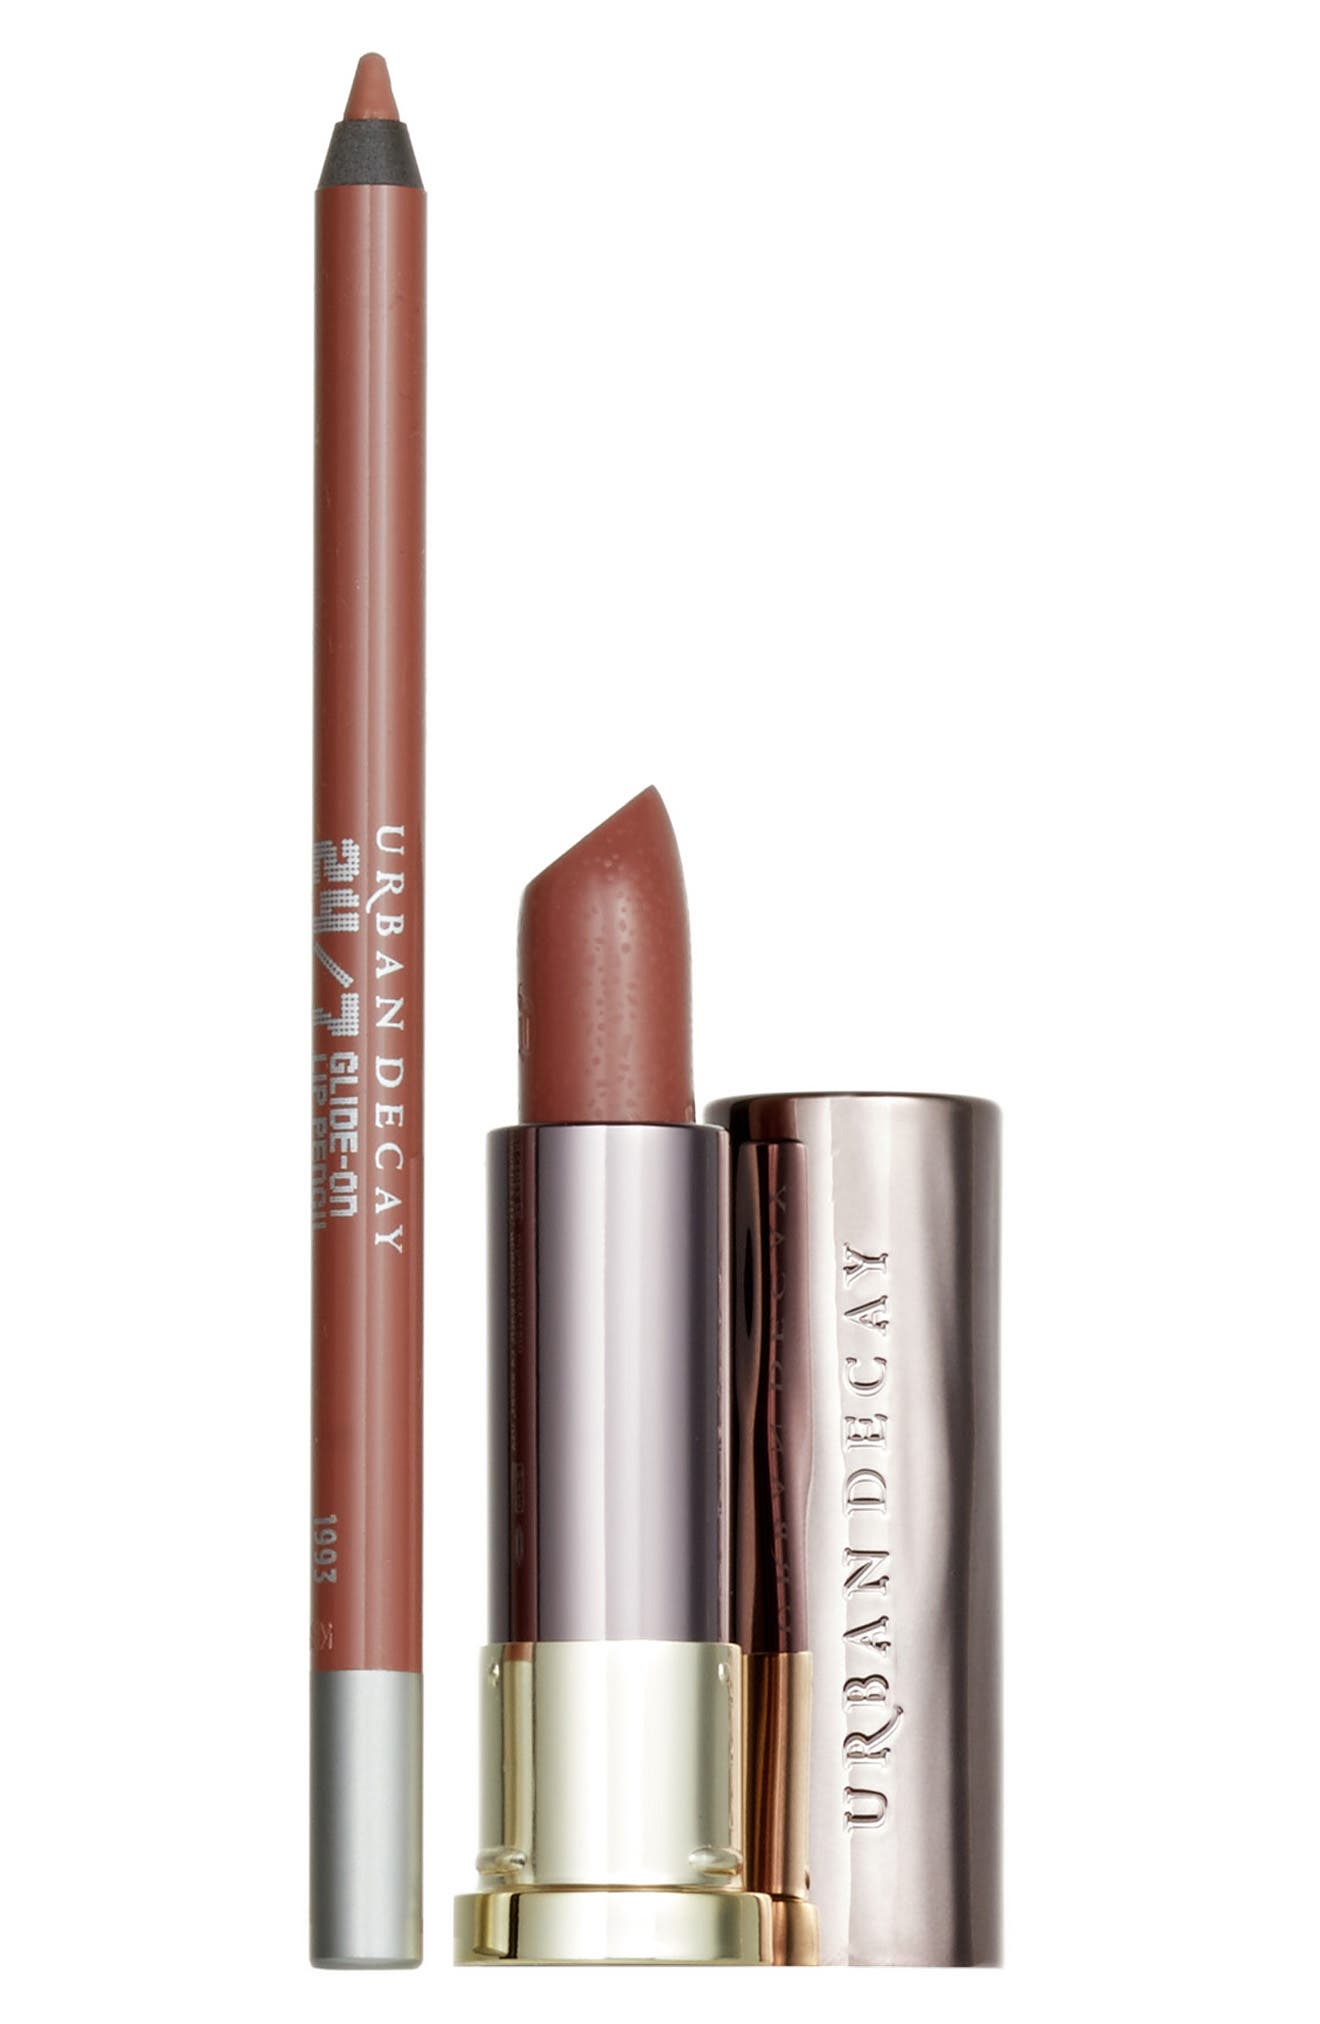 Urban Decay The Ultimate Pair Vice Lipstick & 24/7 Pencil Duo ($37 Value)